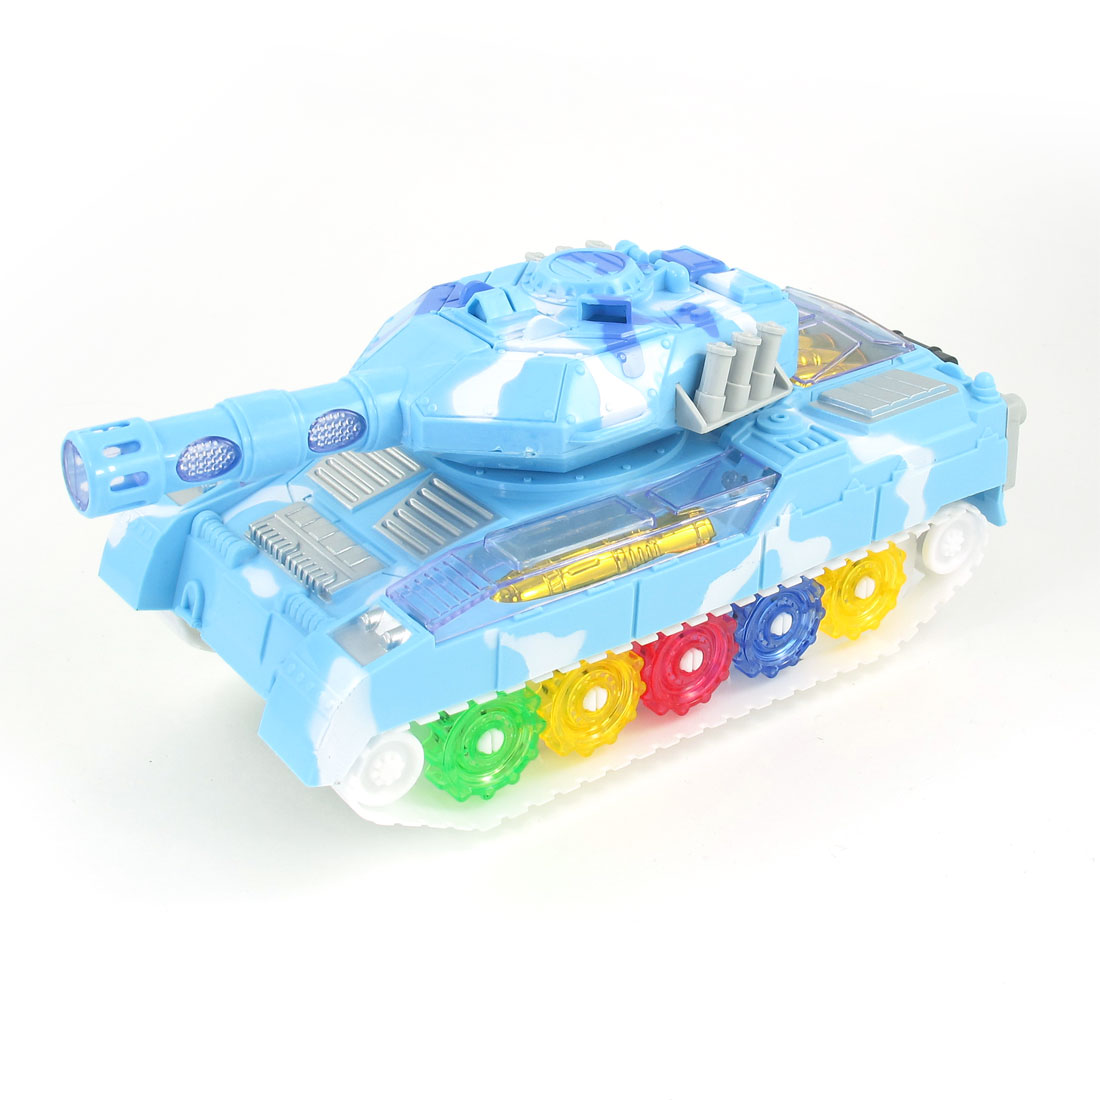 Light Blue Plastic Flashing LED Light Electric Panzer Tank Toy for Kids